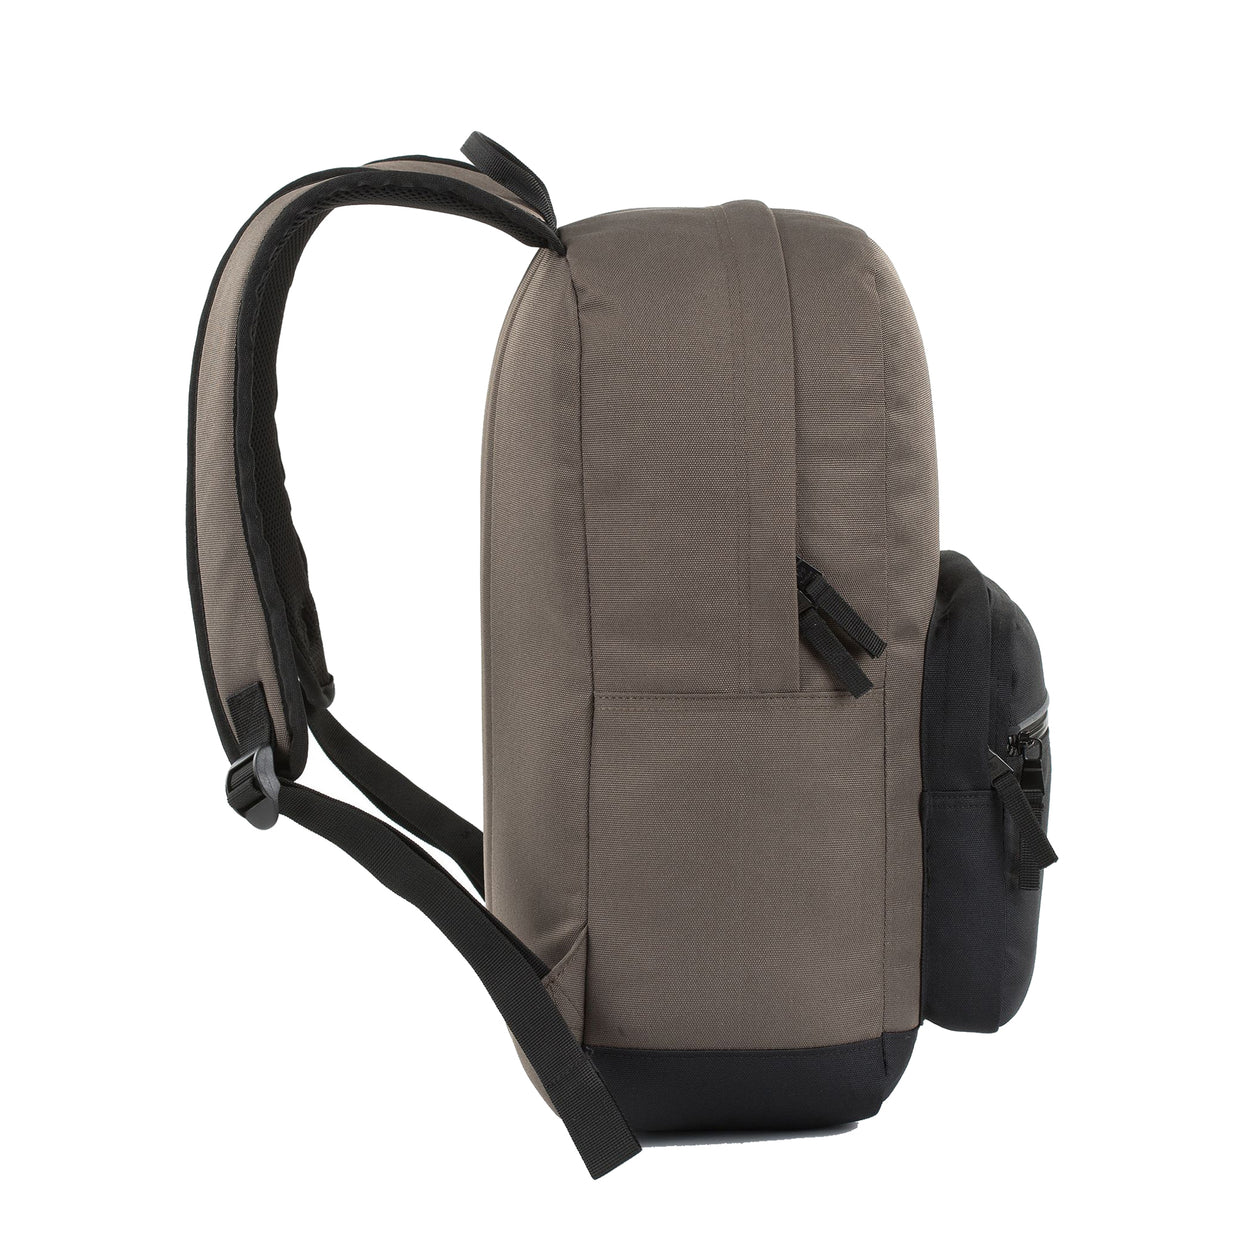 Marton Backpack - Dark Khaki/Black image 4